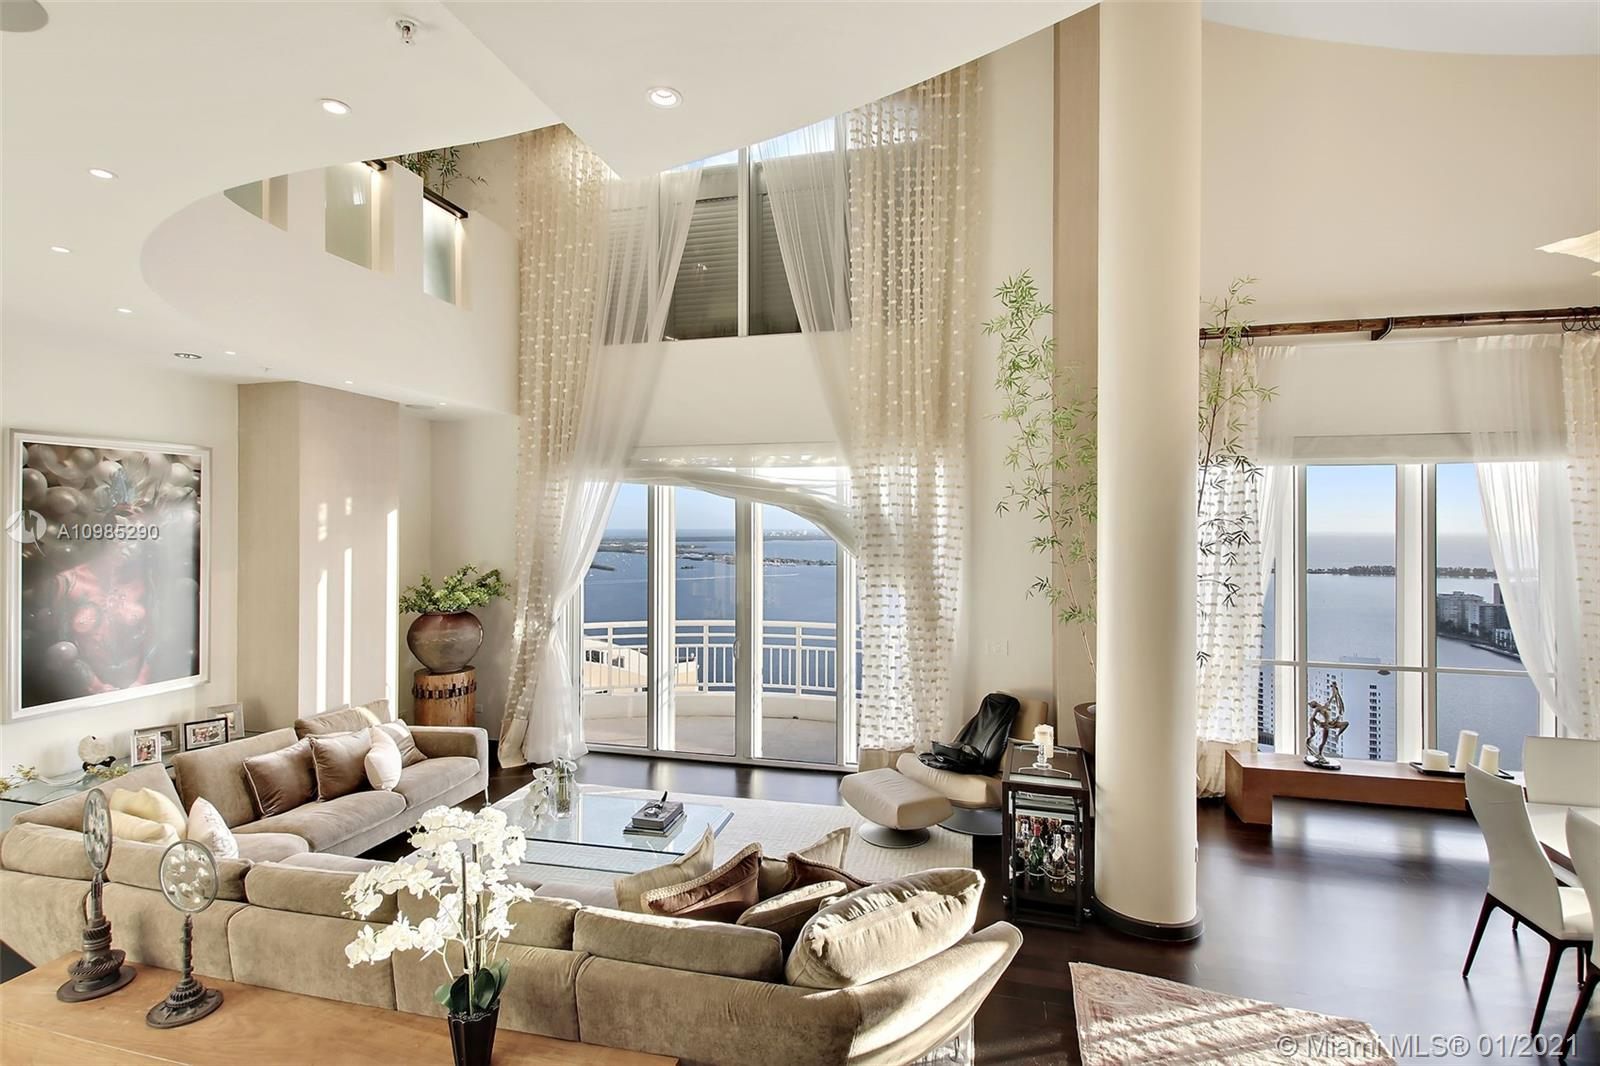 One of a kind!! Gorgeous PH on Brickell Key!  Breathtaking, direct water views from every corner! This very unique property is one of the few with high 40ft ceilings. Wood in all bedrooms, marble in baths/kitchen. This beautiful and spacious PH features 3 beds/3.5 baths, includes a cabana by the pool, a closed private garage within the parking area with room for more than two cars and extra storage. A true gem! Among the building's amenities you will find pool, 2 level fitness center, BBQ area, tennis court & racquetball court, valet, concierge & much more. Best location within the sought after island of Brickell Key, minutes to the best shopping, dining and the best Miami has to offer while in the quiet of Brickell Key